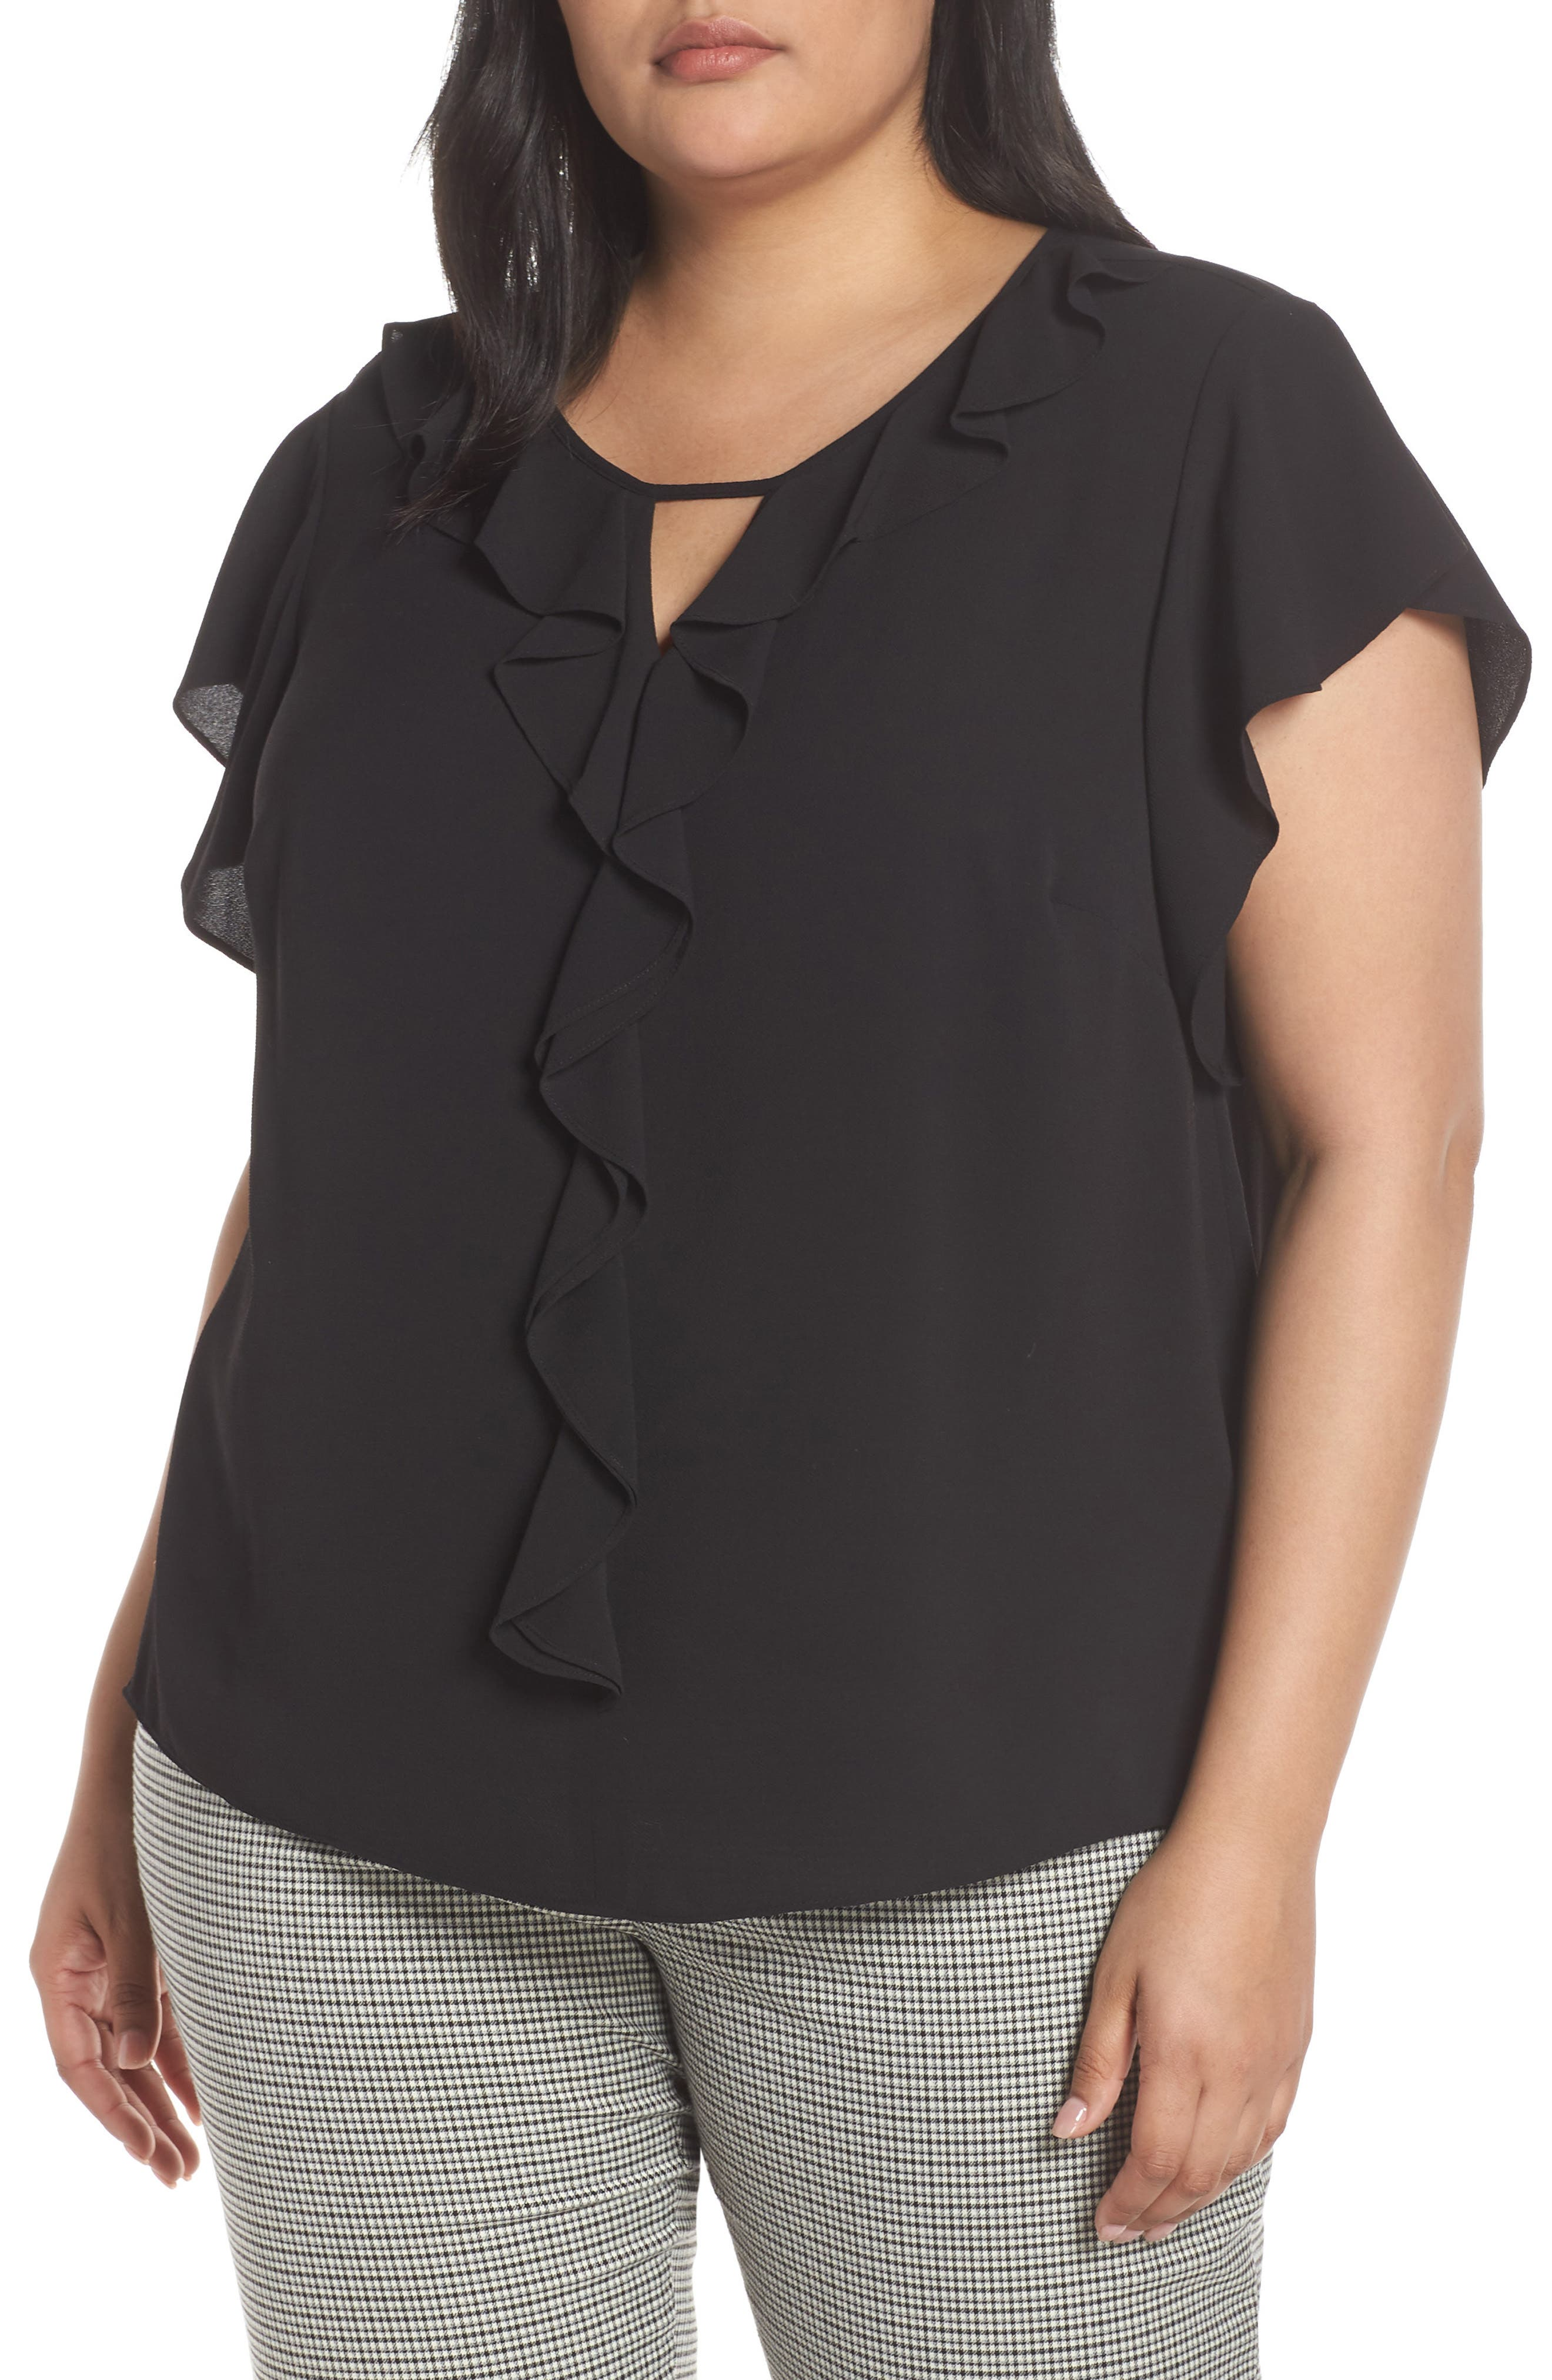 VINCE CAMUTO, Ruffle Flutter Sleeve Top, Main thumbnail 1, color, RICH BLACK